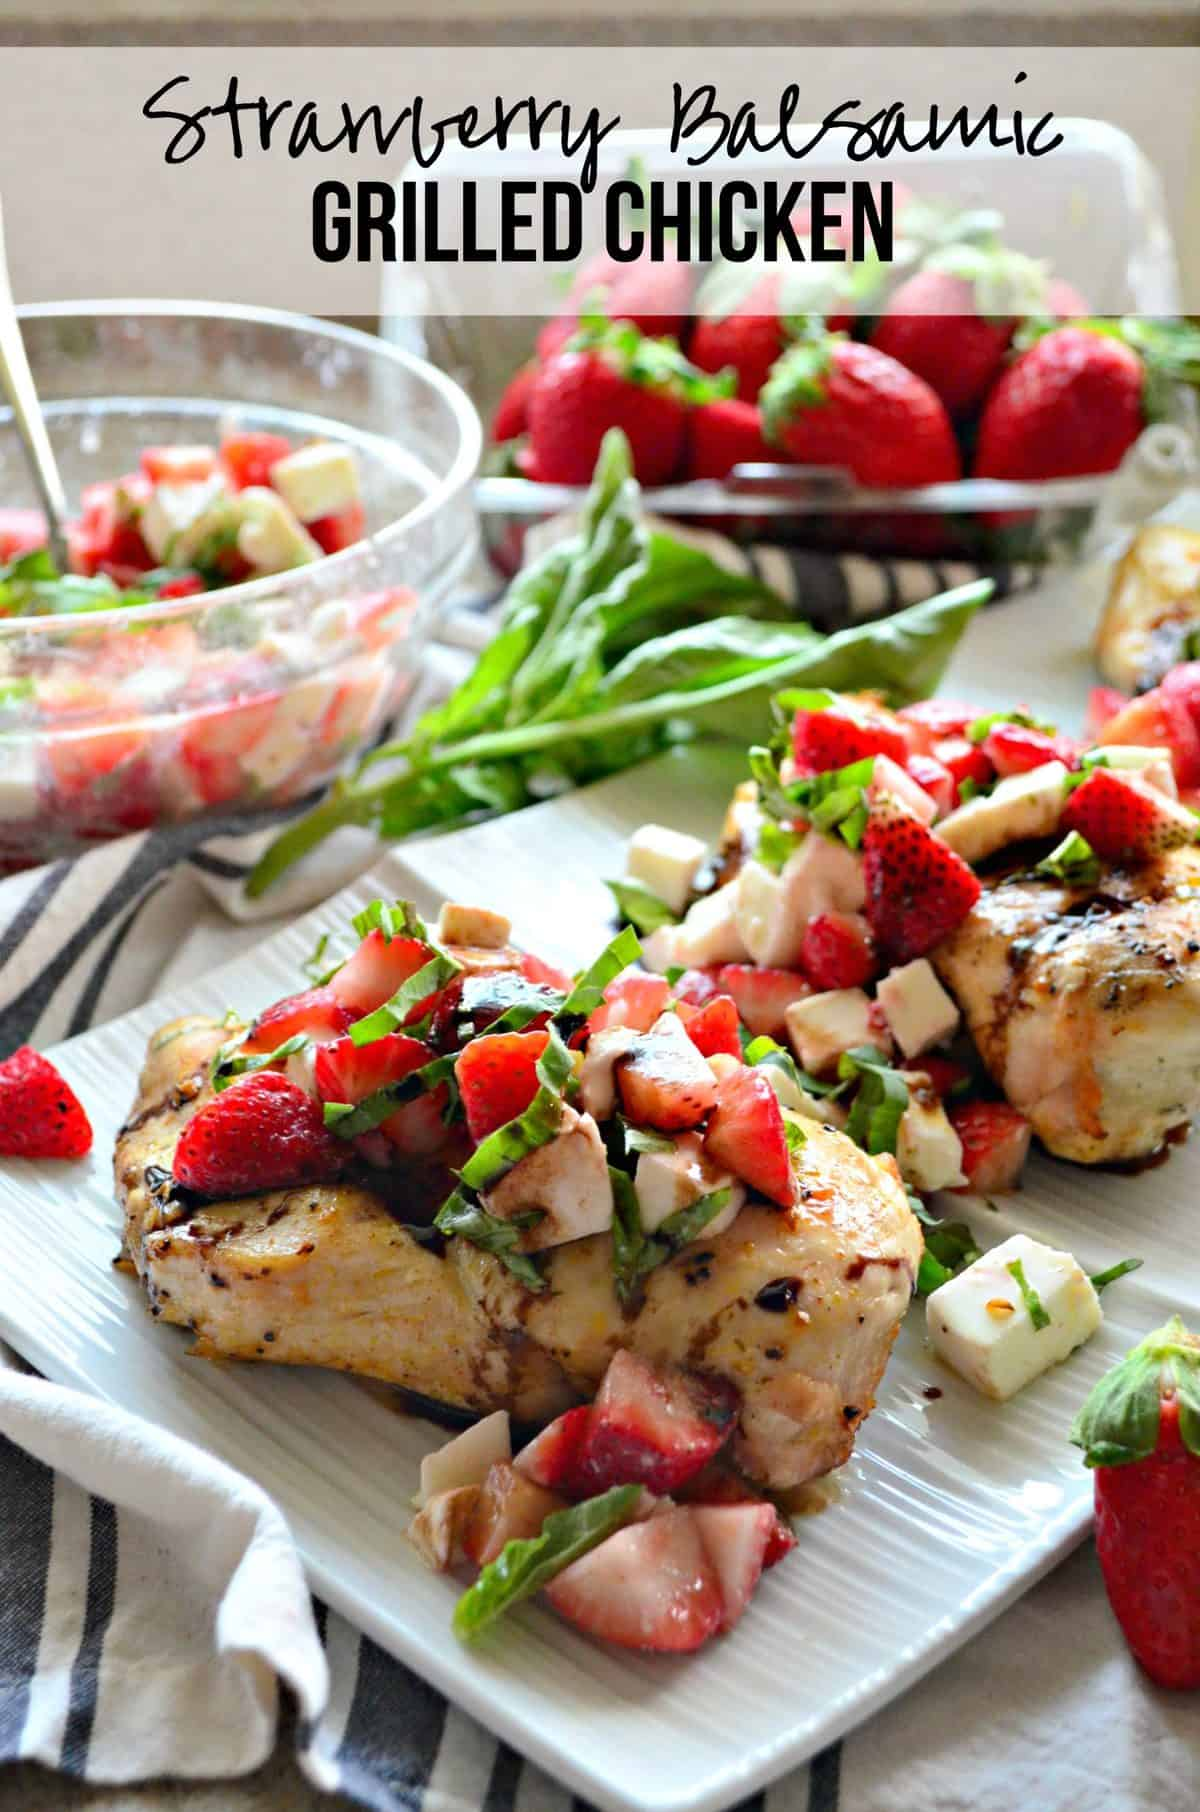 closeup grilled chicken topped with basil, strawberries, and balsamic sauce on white platter with text.